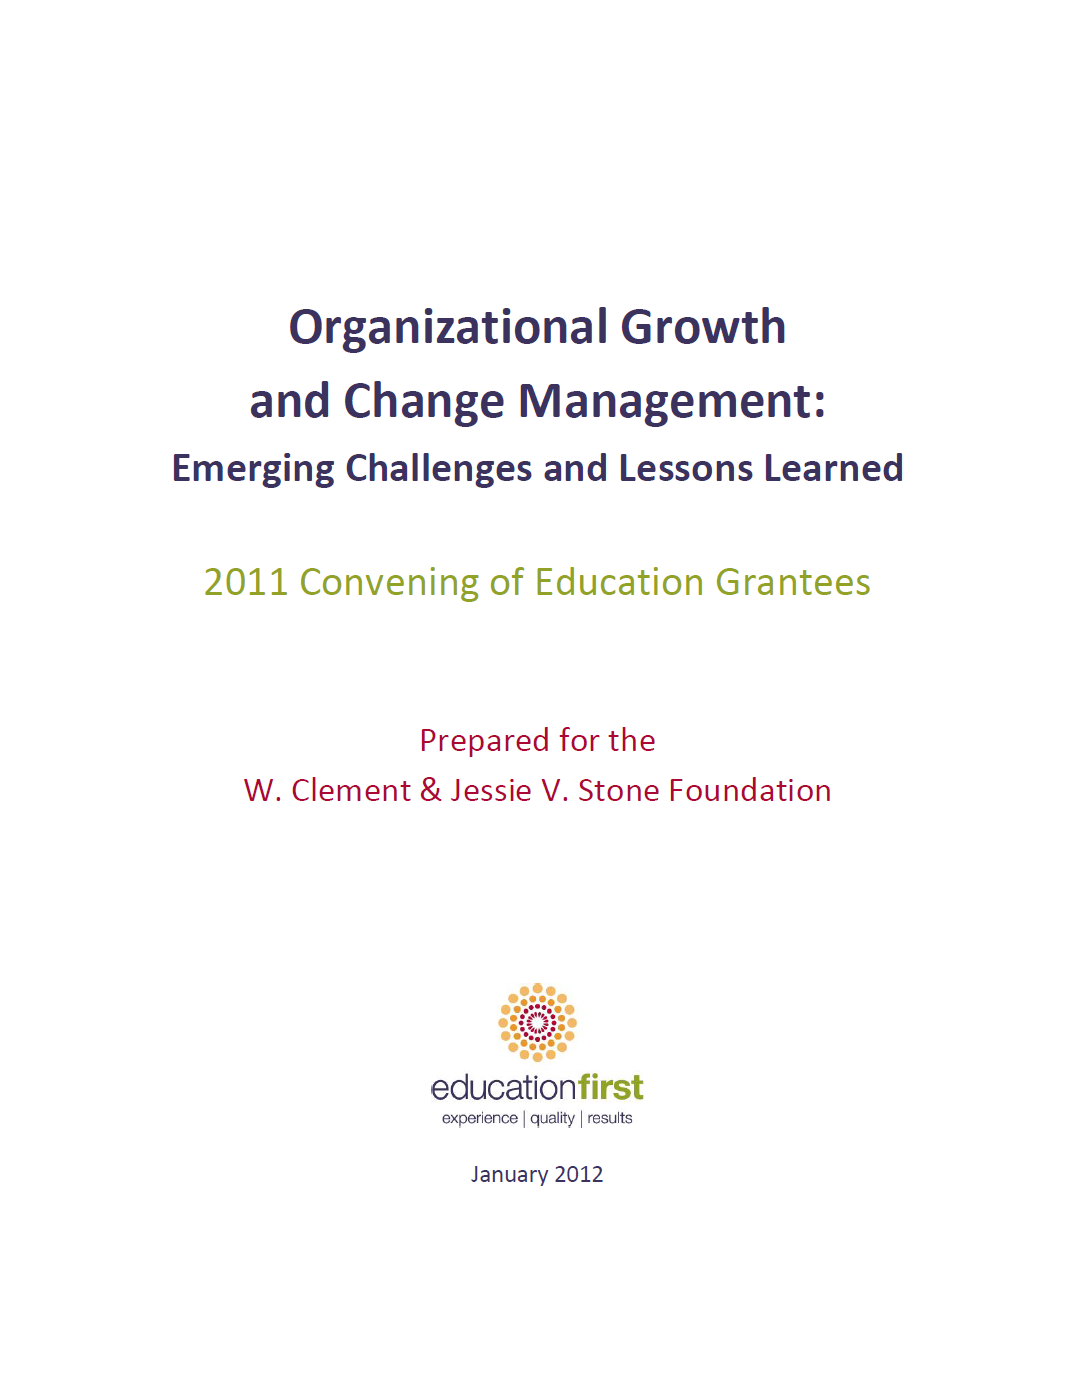 Read the full publication. Organizational Growth and Change Management